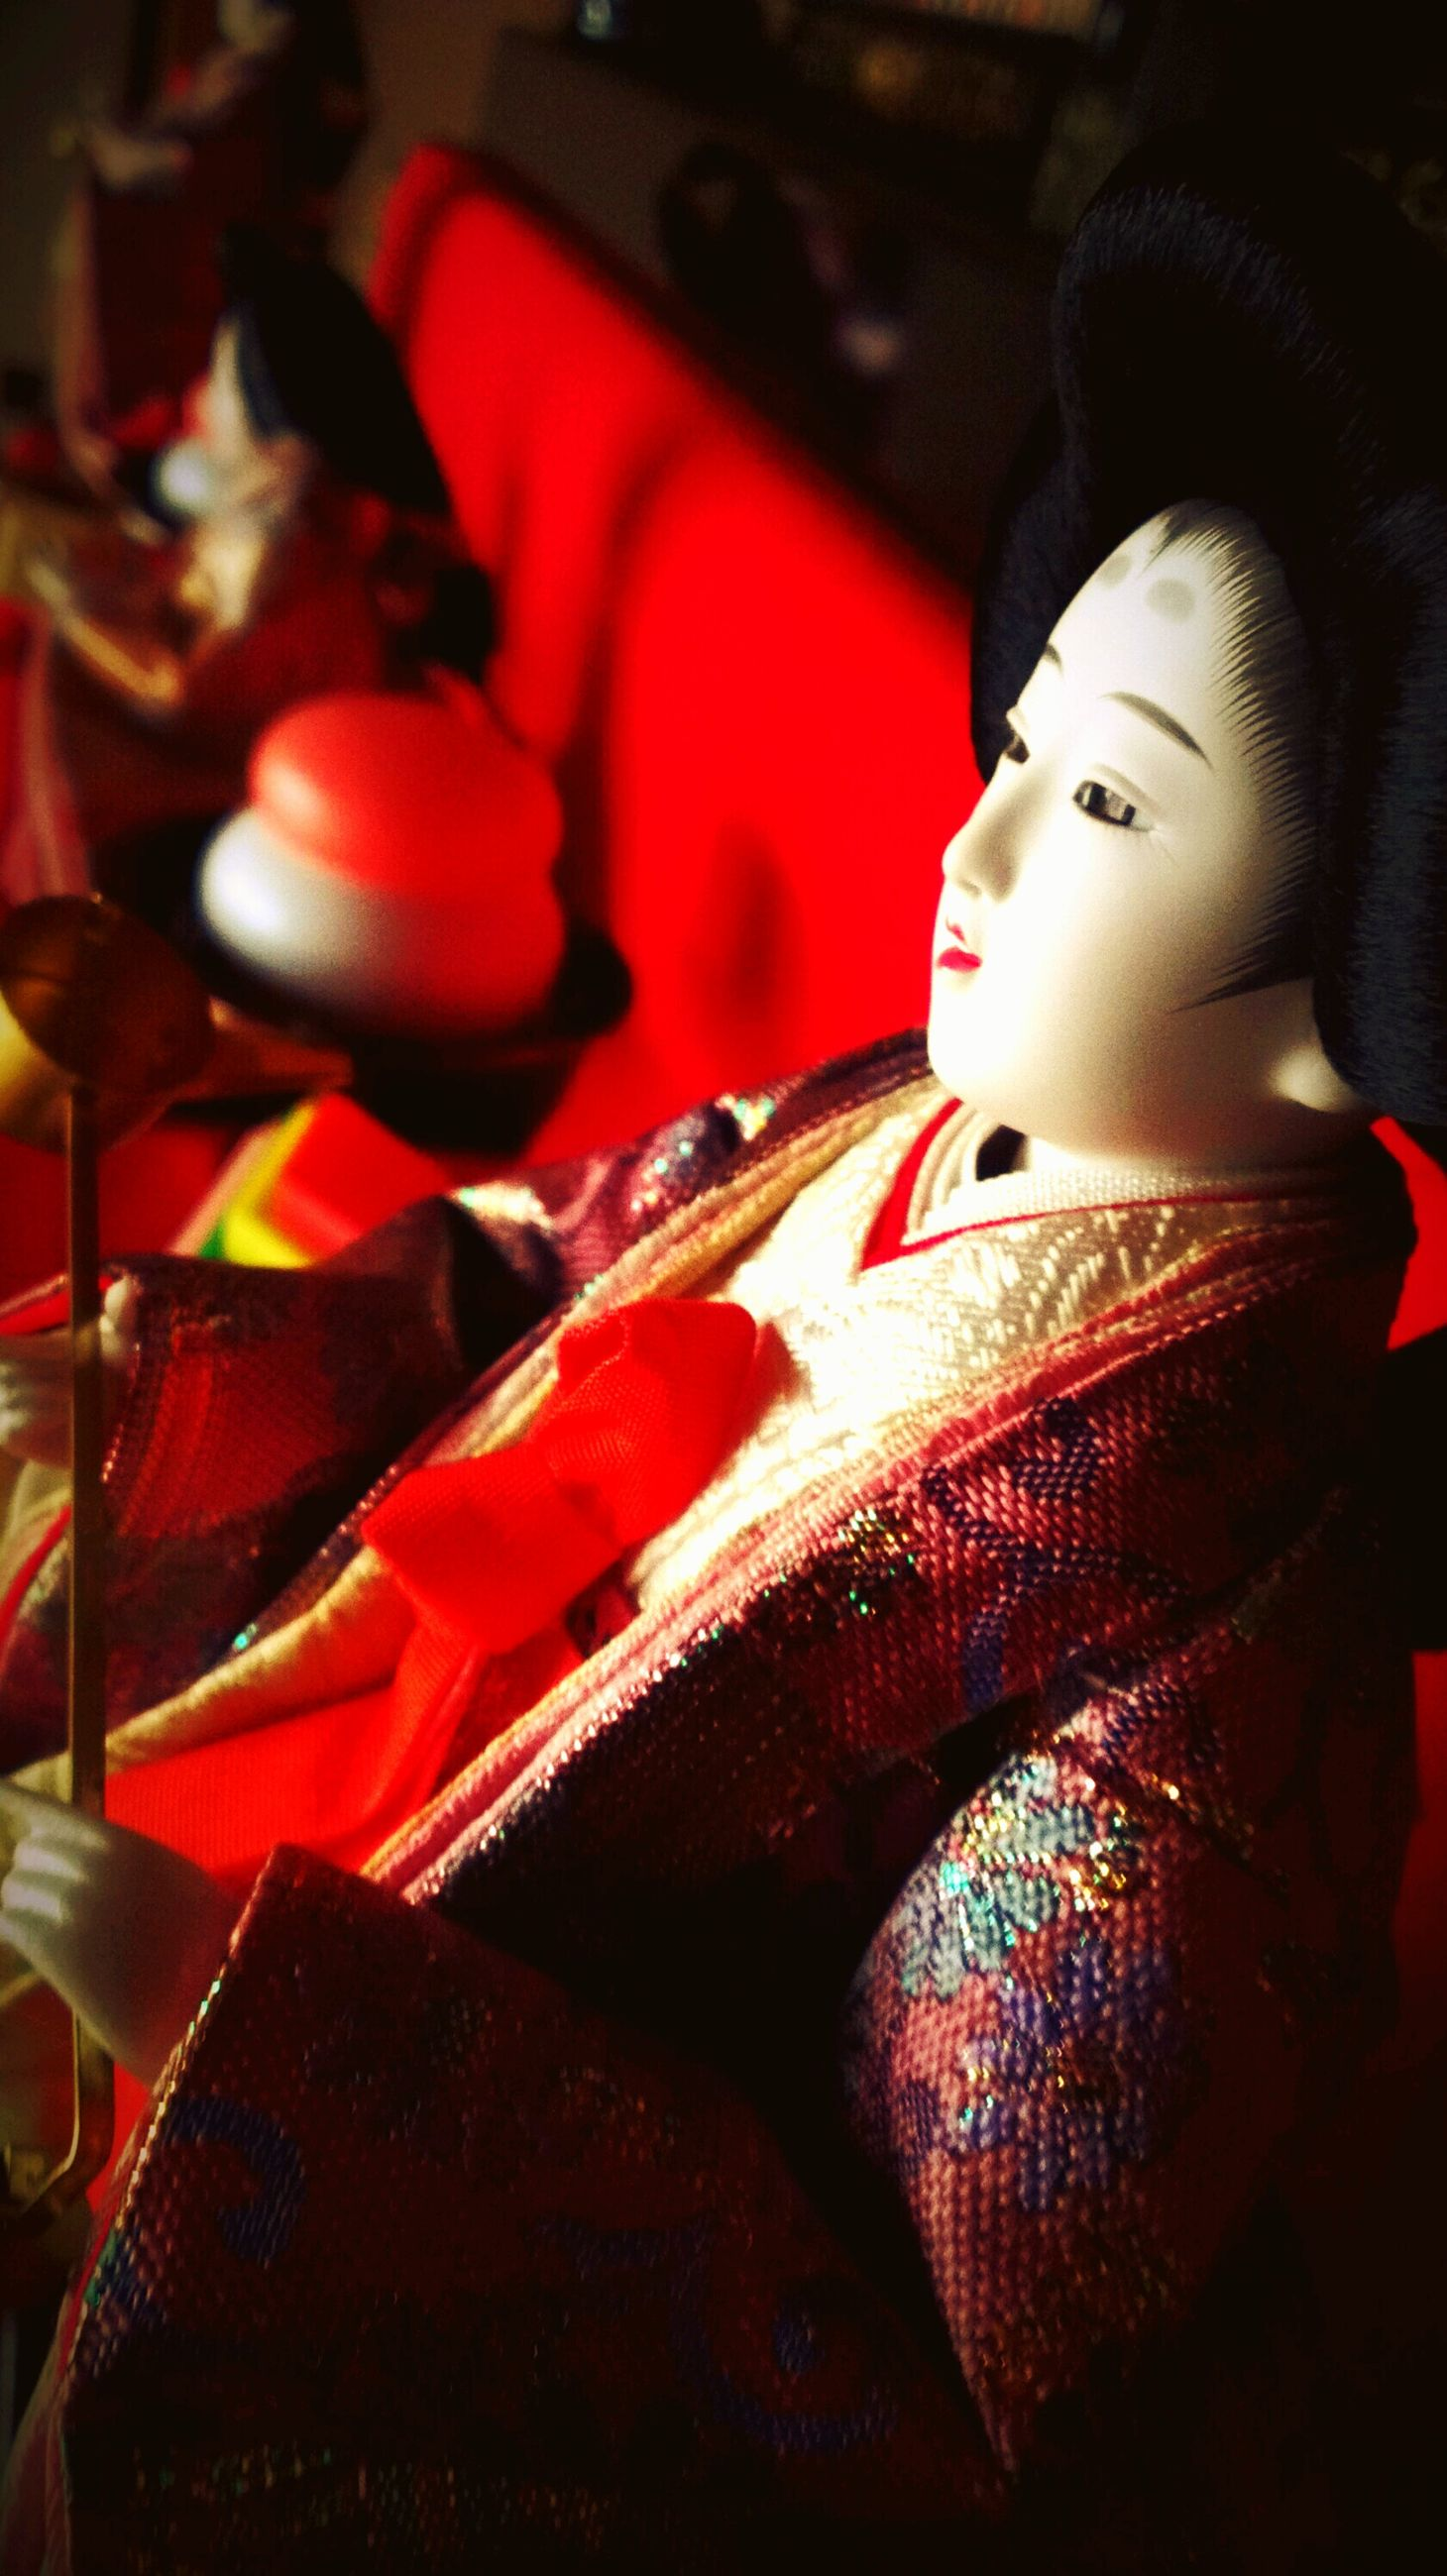 indoors, close-up, red, human representation, art and craft, focus on foreground, still life, arts culture and entertainment, tradition, retail, art, music, selective focus, large group of objects, religion, spirituality, no people, cultures